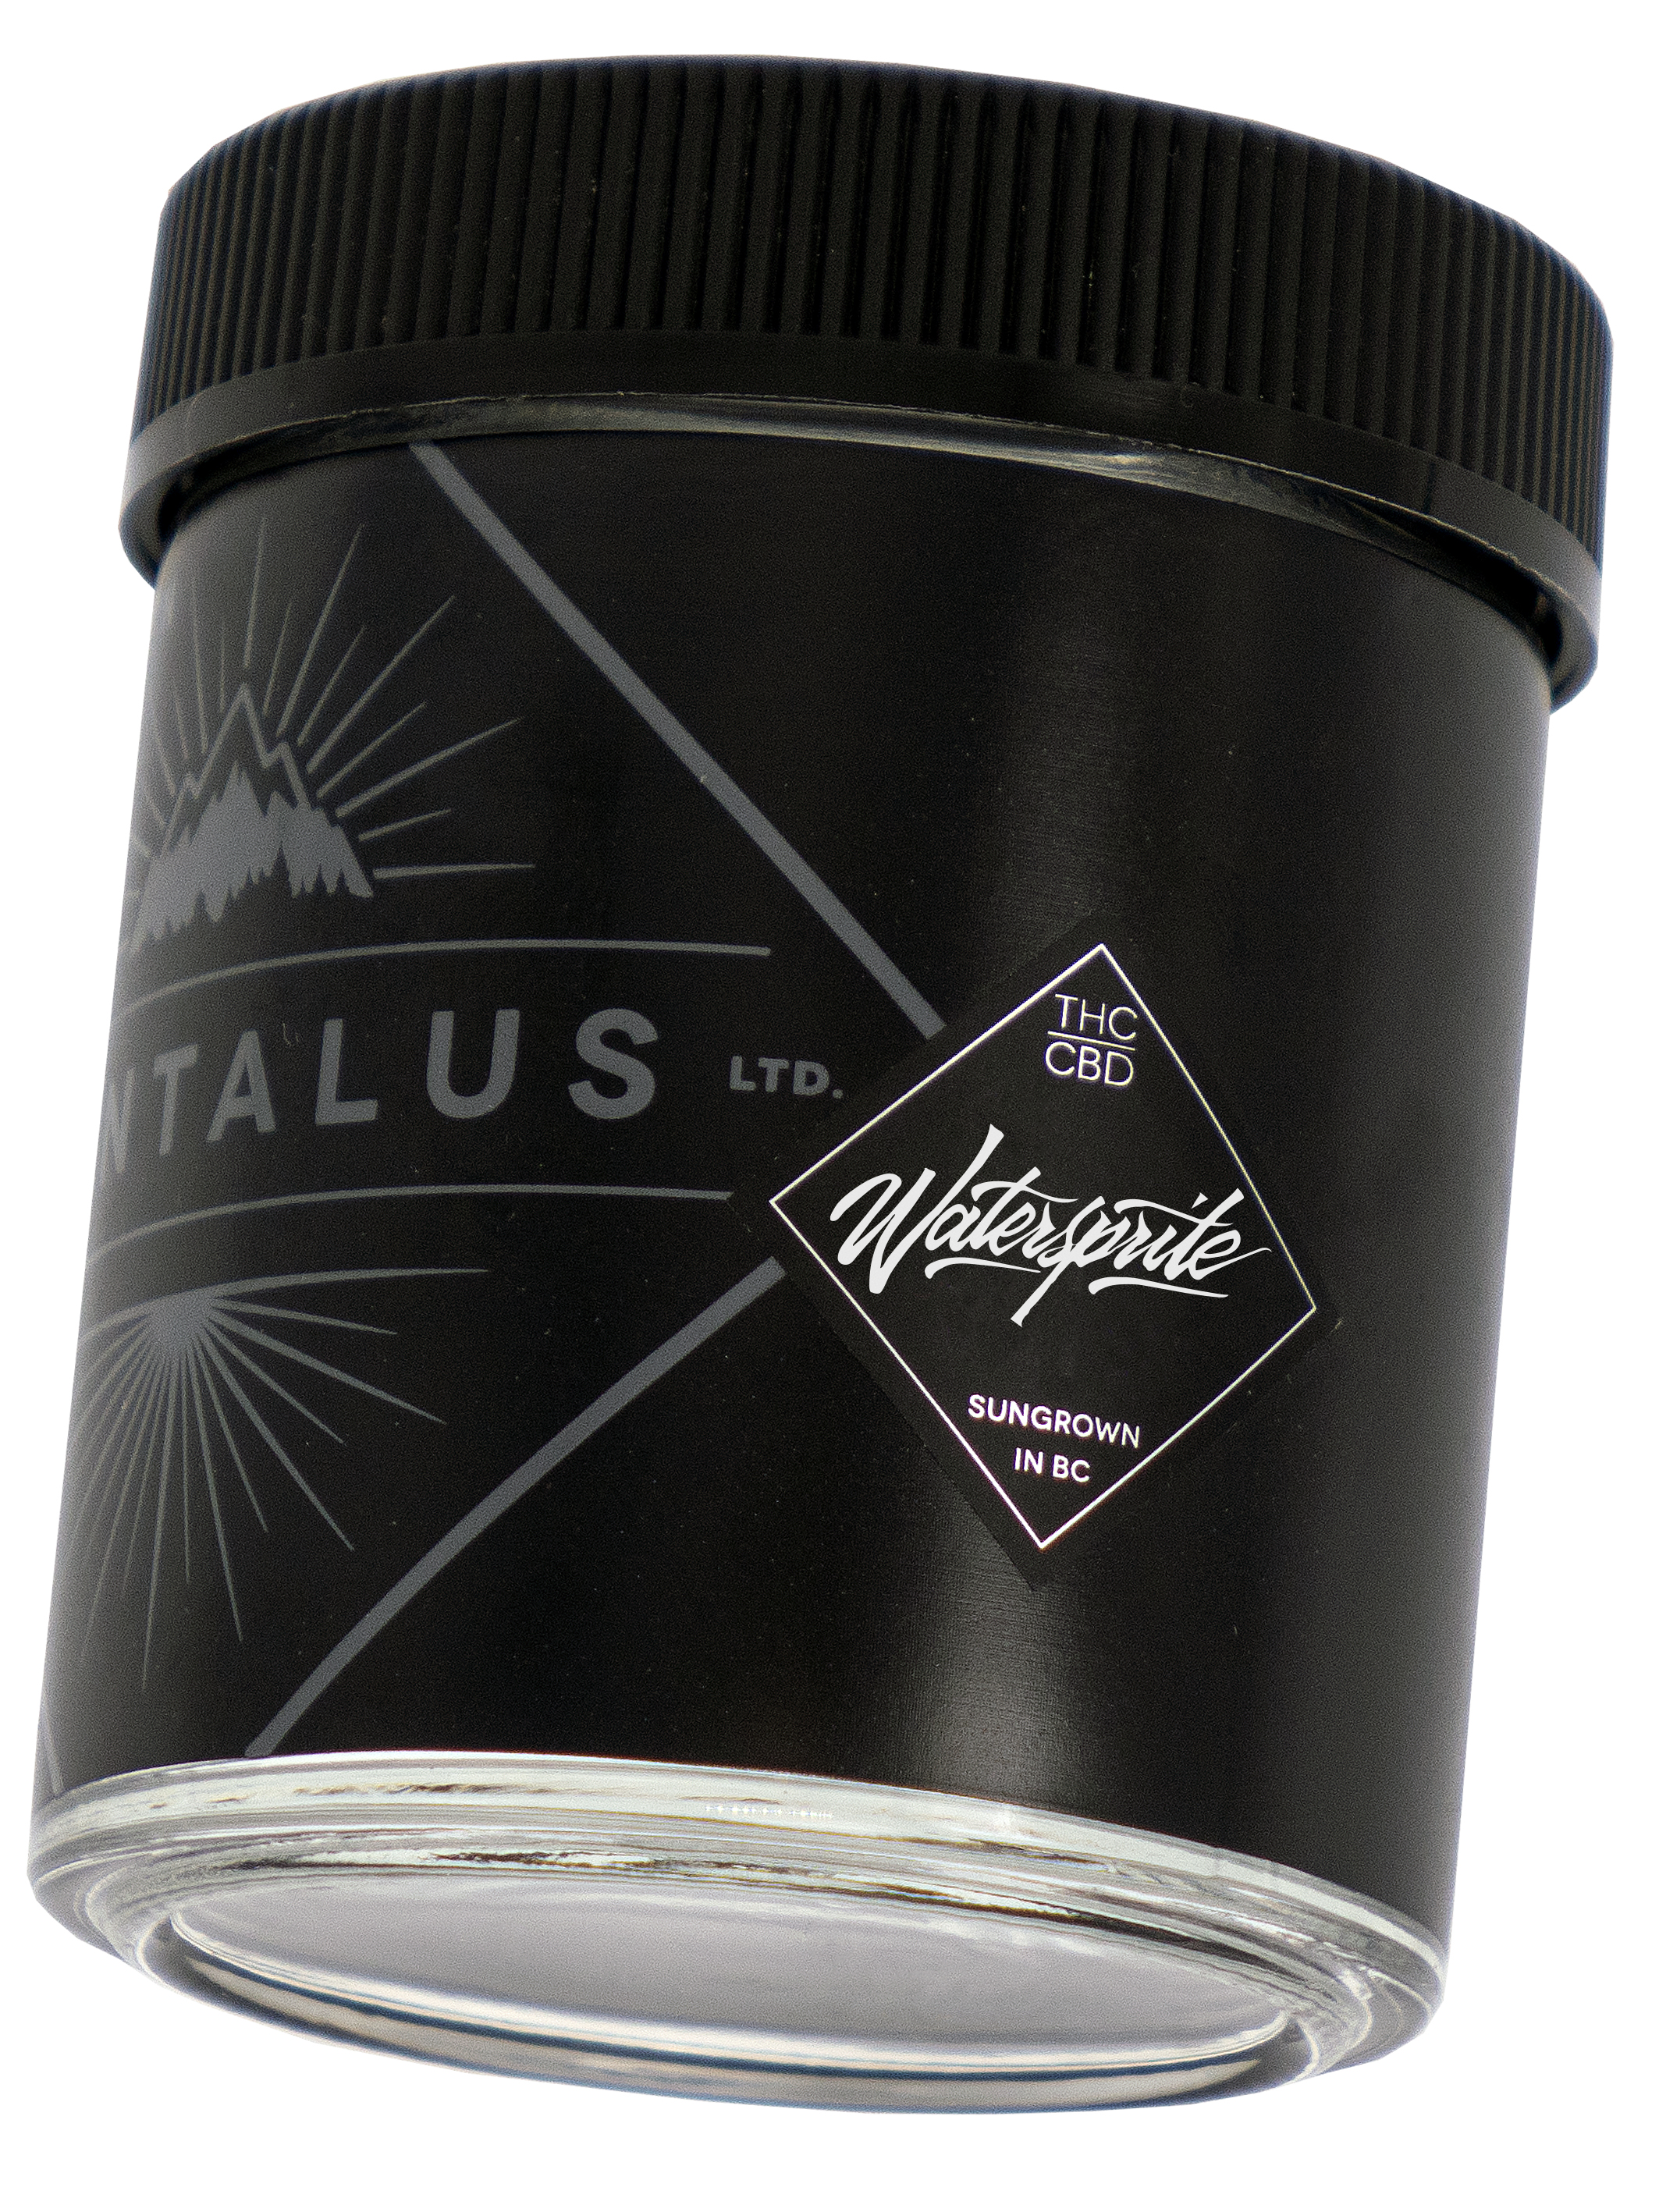 Tantalus Packaging